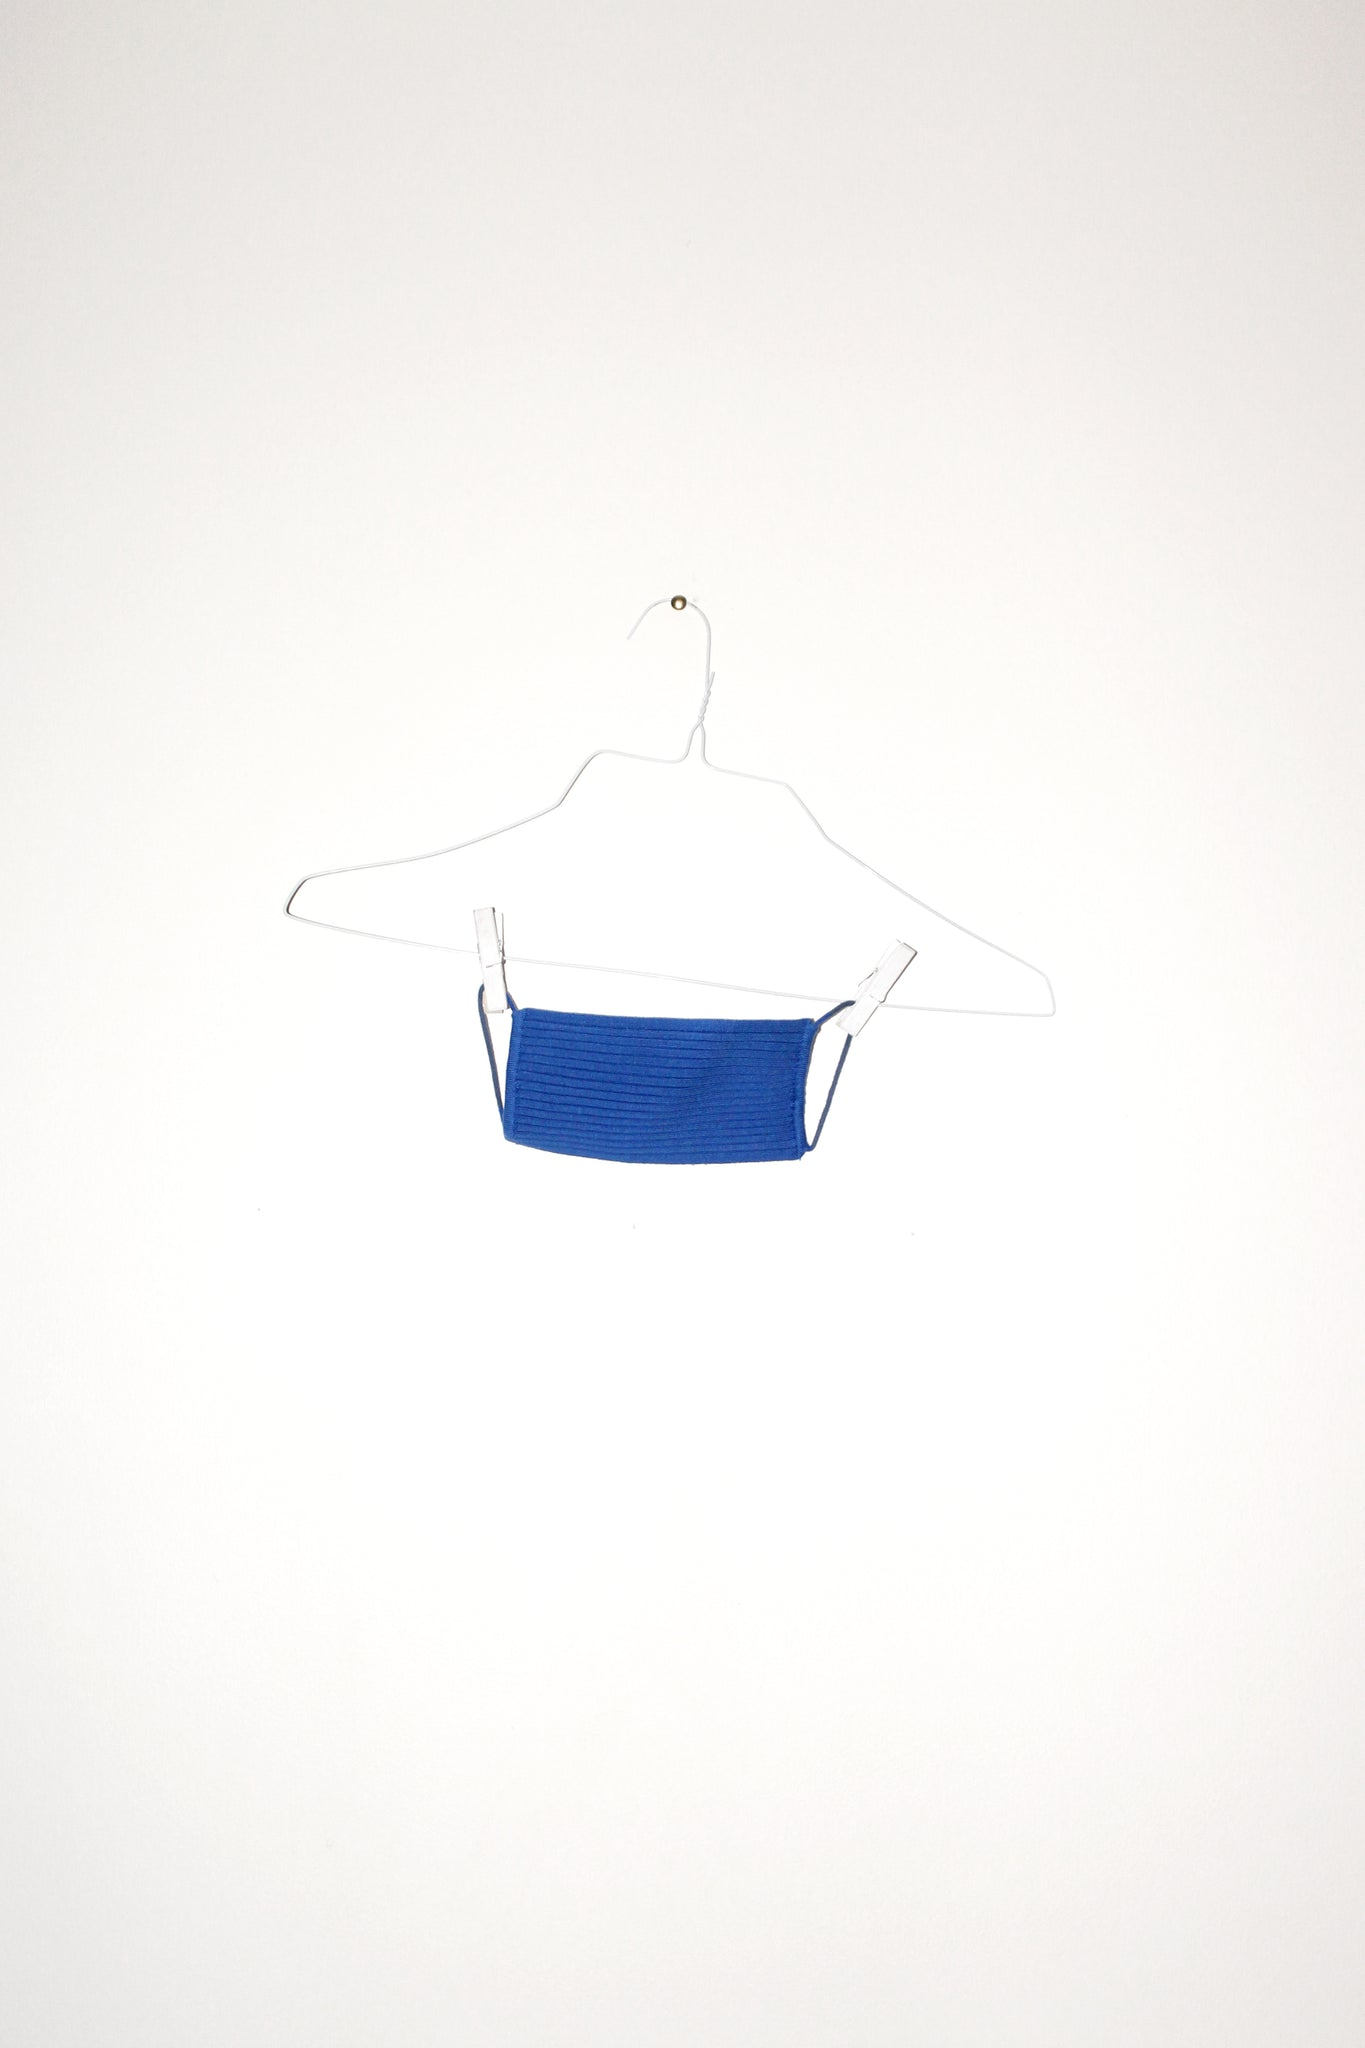 NONNA Surgical Mask in Genie